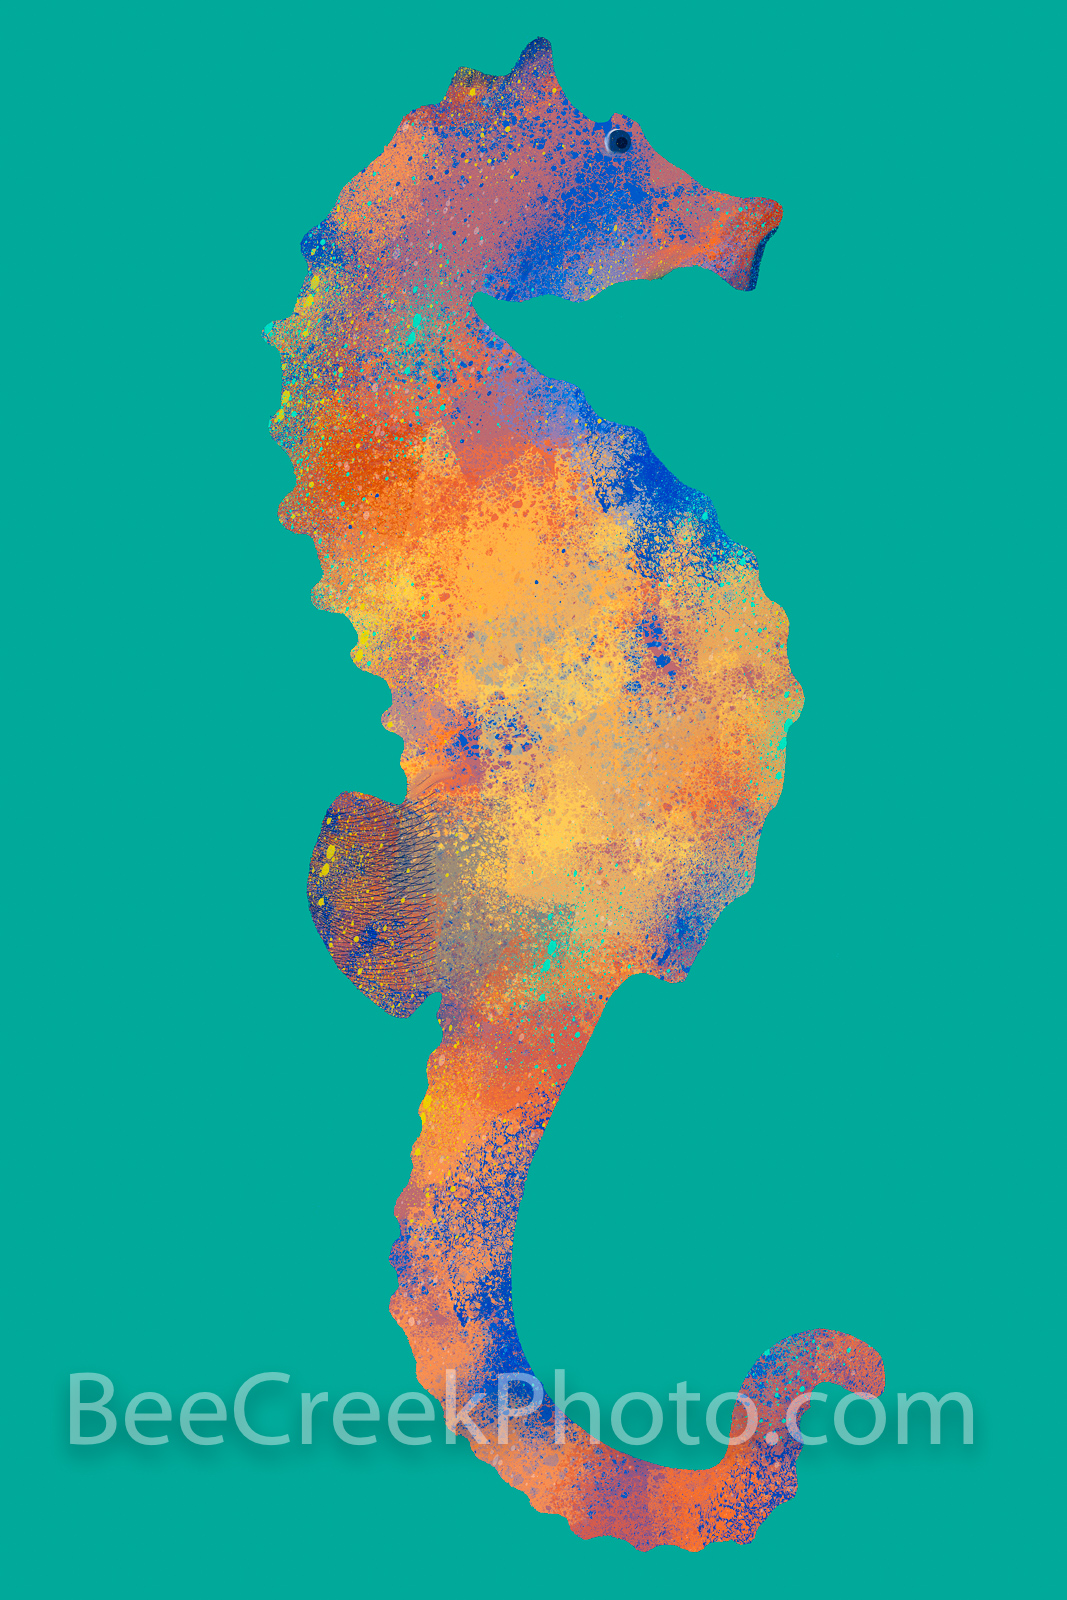 Colorized Seahorse Abstract with a blue green background. Digital artwork